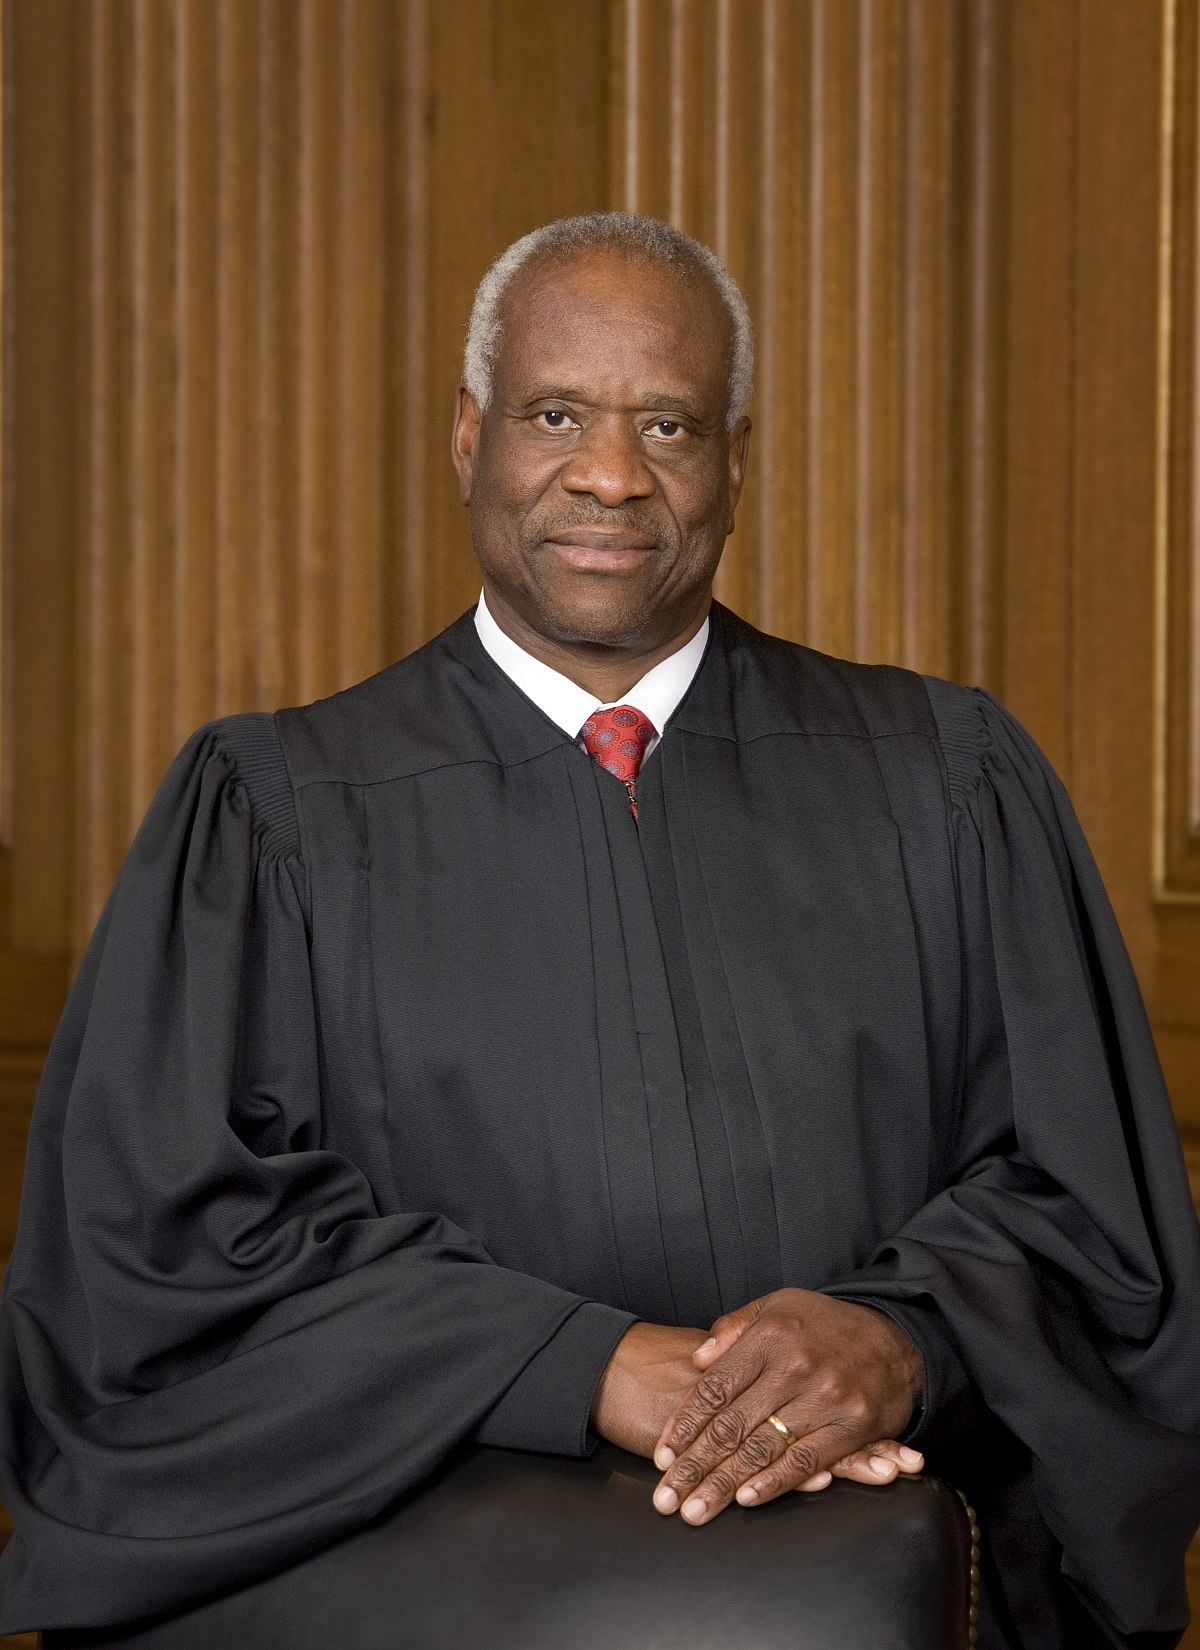 Clarence Thomas Wikipedia From Quot Http En650wikiorg Indexphp 415watchdogcircuit